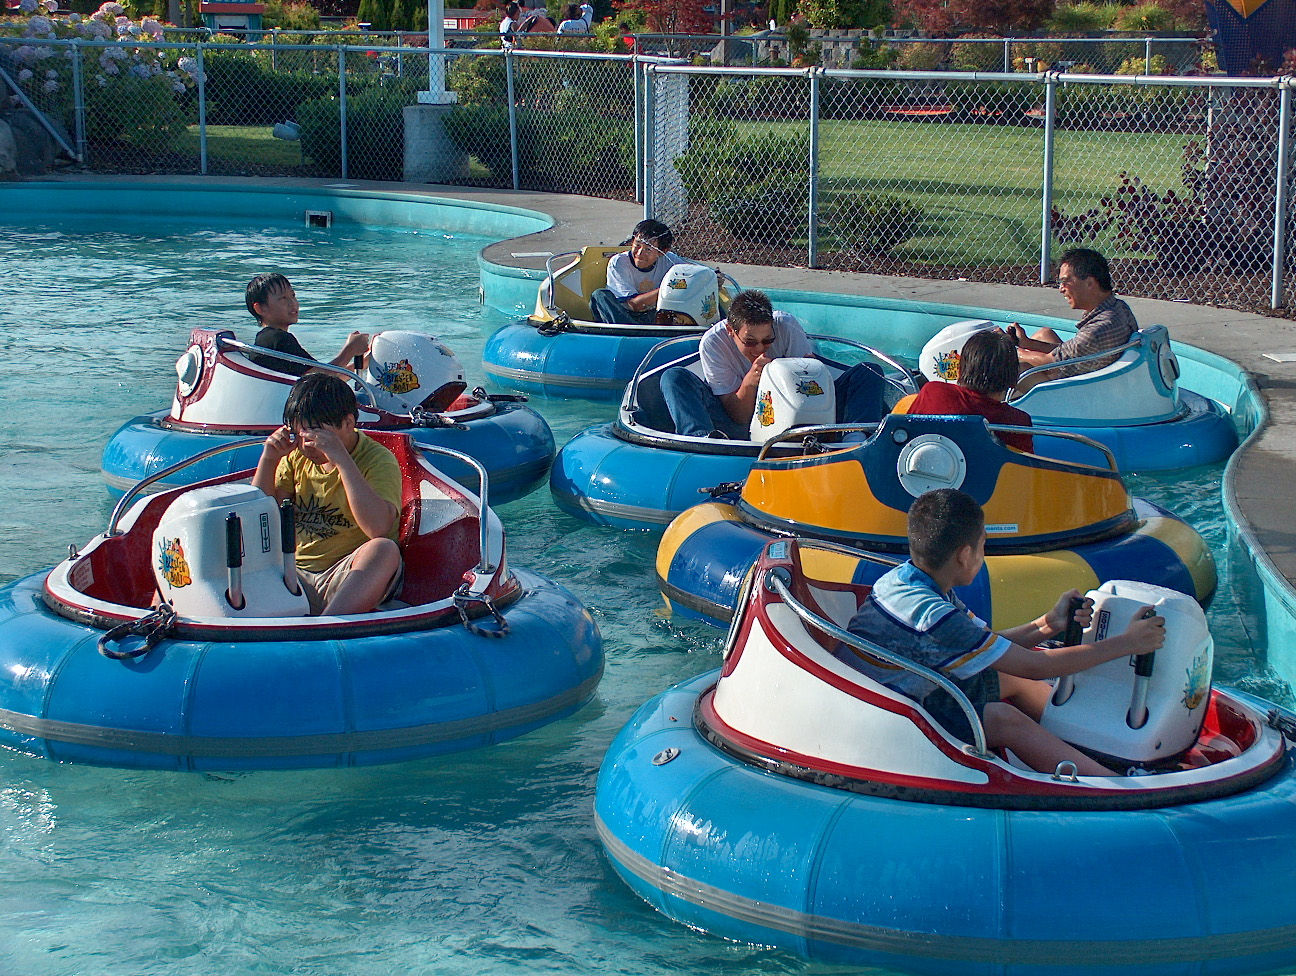 kids gas cars with File Bumper Boats  2 on Baja Kids Electric Go Kart 1000w together with Baja Kids Electric Go Kart 1000w besides Christie Brimberry besides Best Toy Car Garage Playsets moreover Buying Guide.